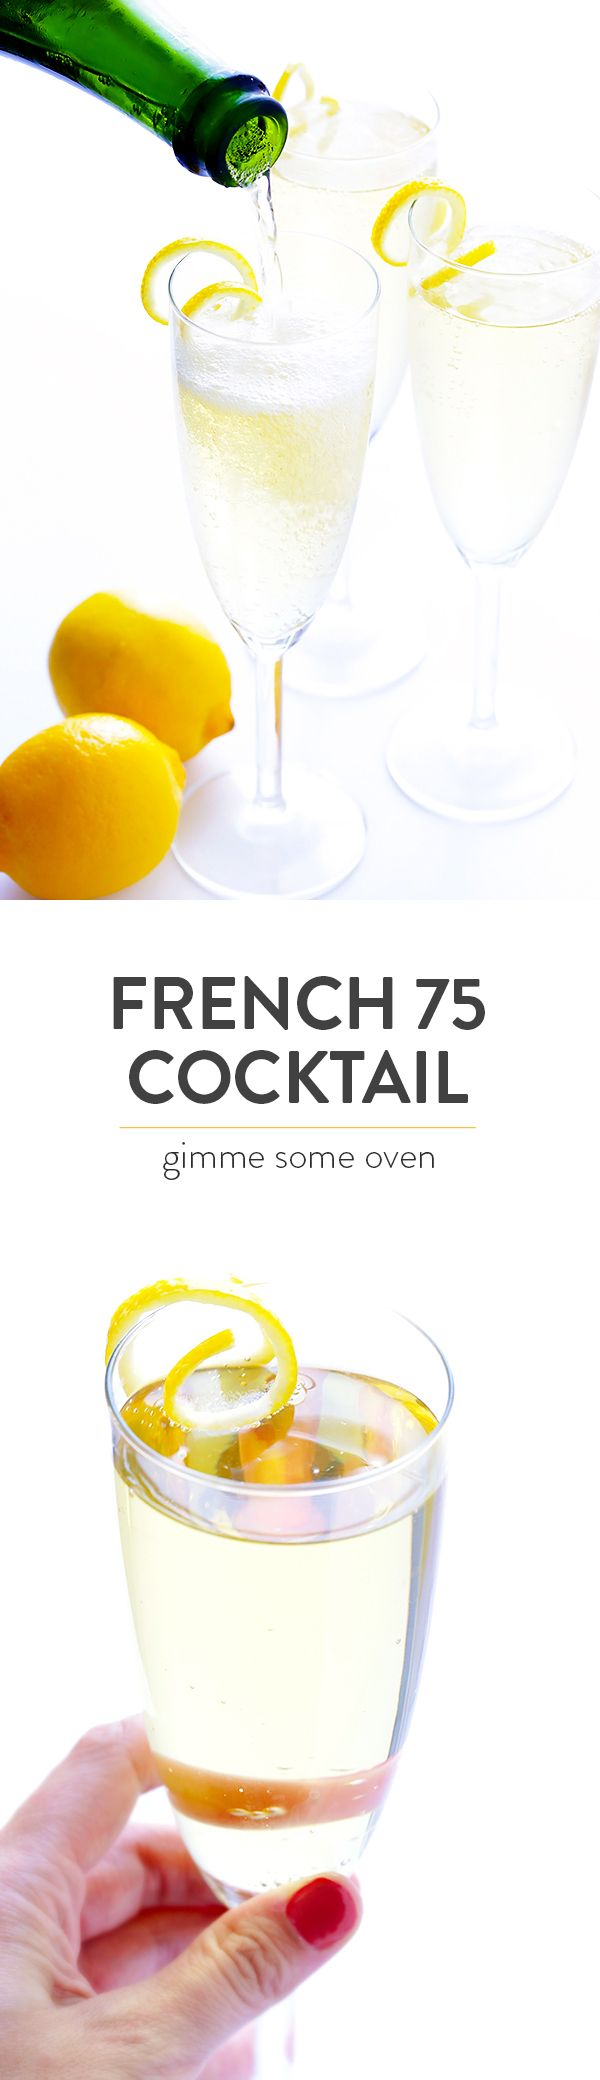 French 75 Cocktail on Pinterest | French 75, Cocktails and Cocktail ...